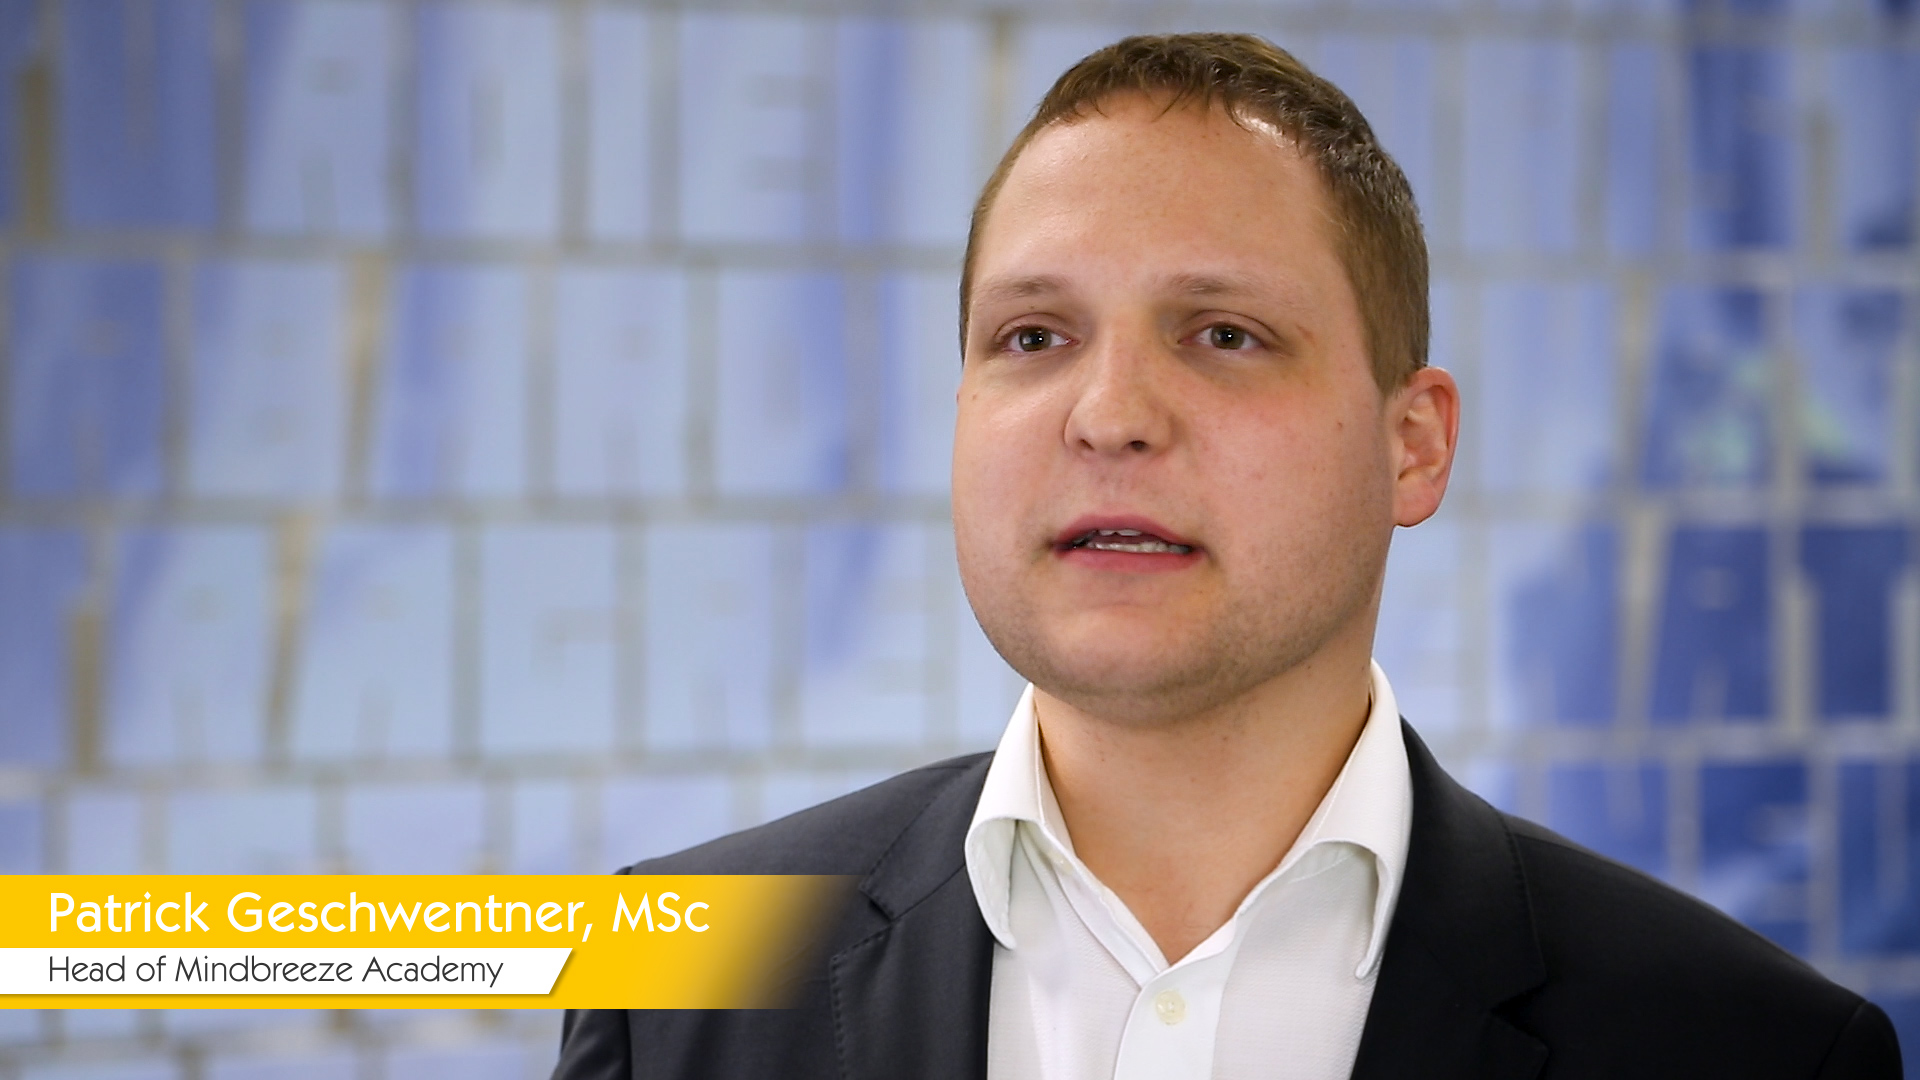 Interview-Video Patrick Geschwentner, Head of Mindbreeze Academy